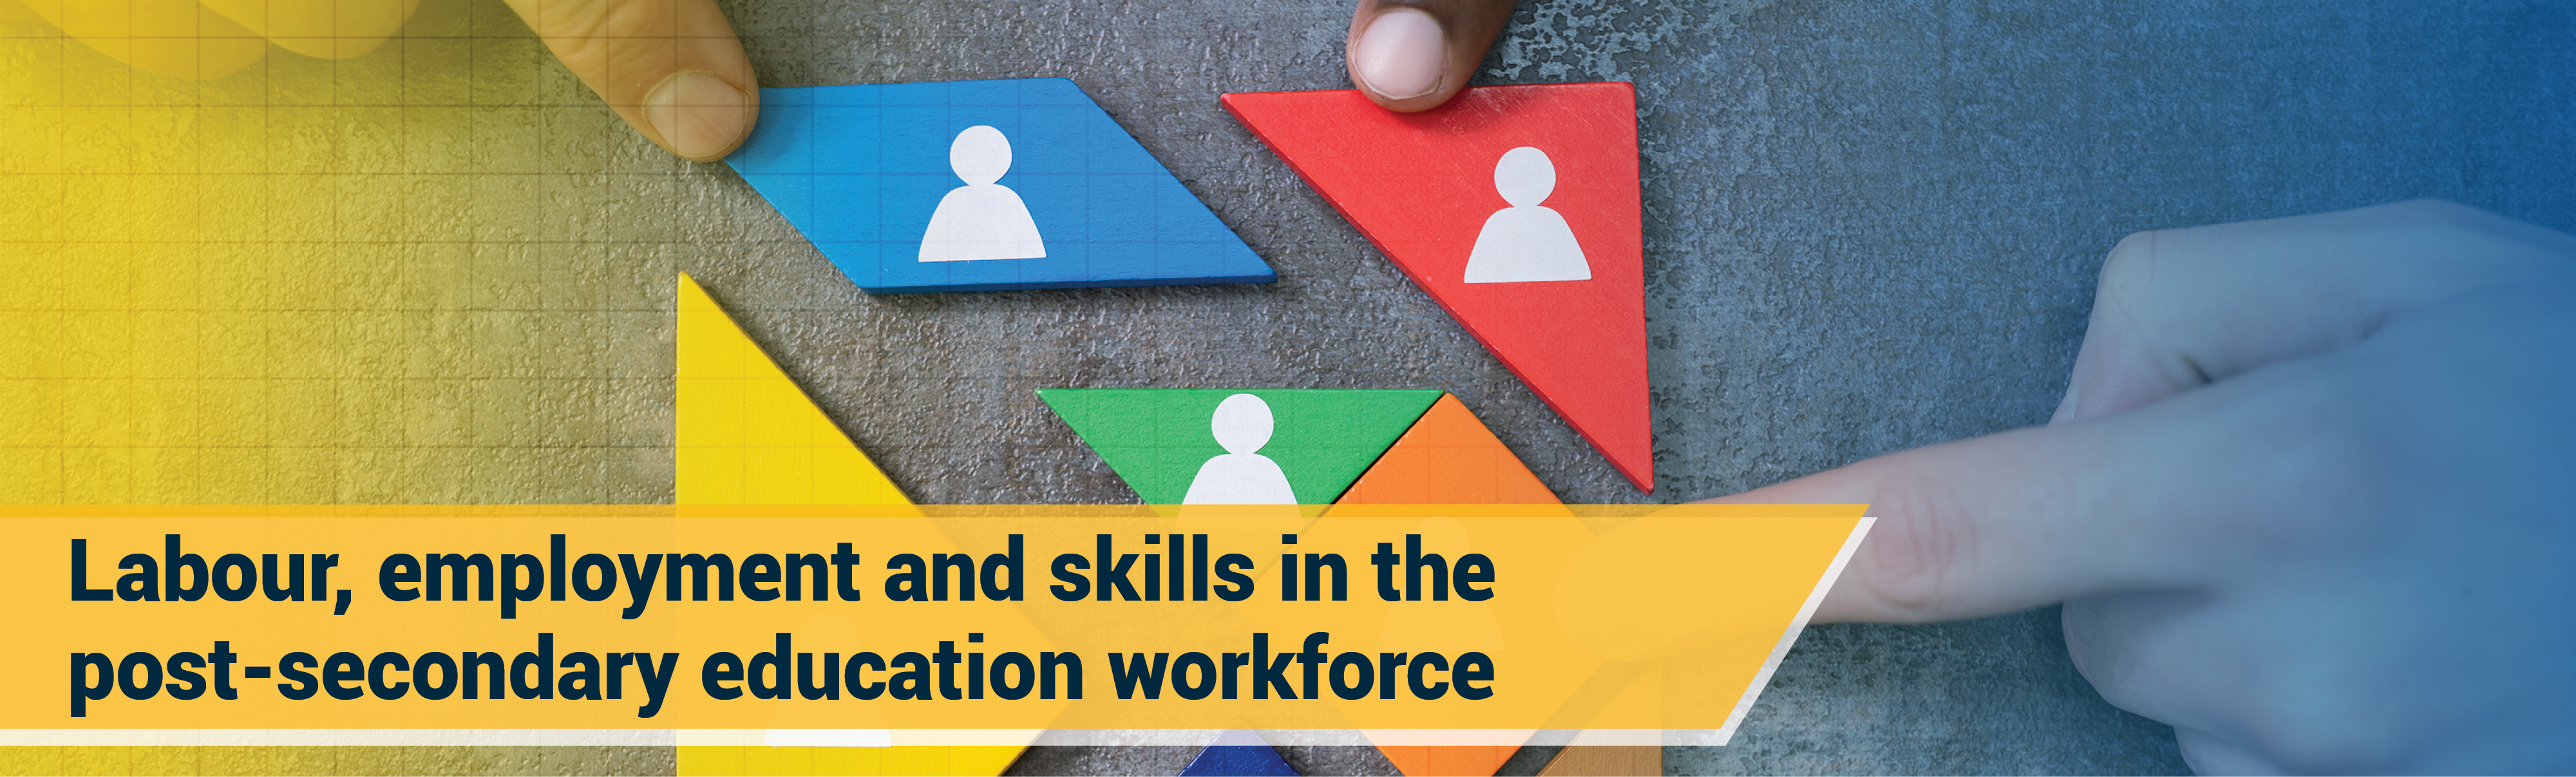 Labour, employment and skills in the post-secondary education workforce